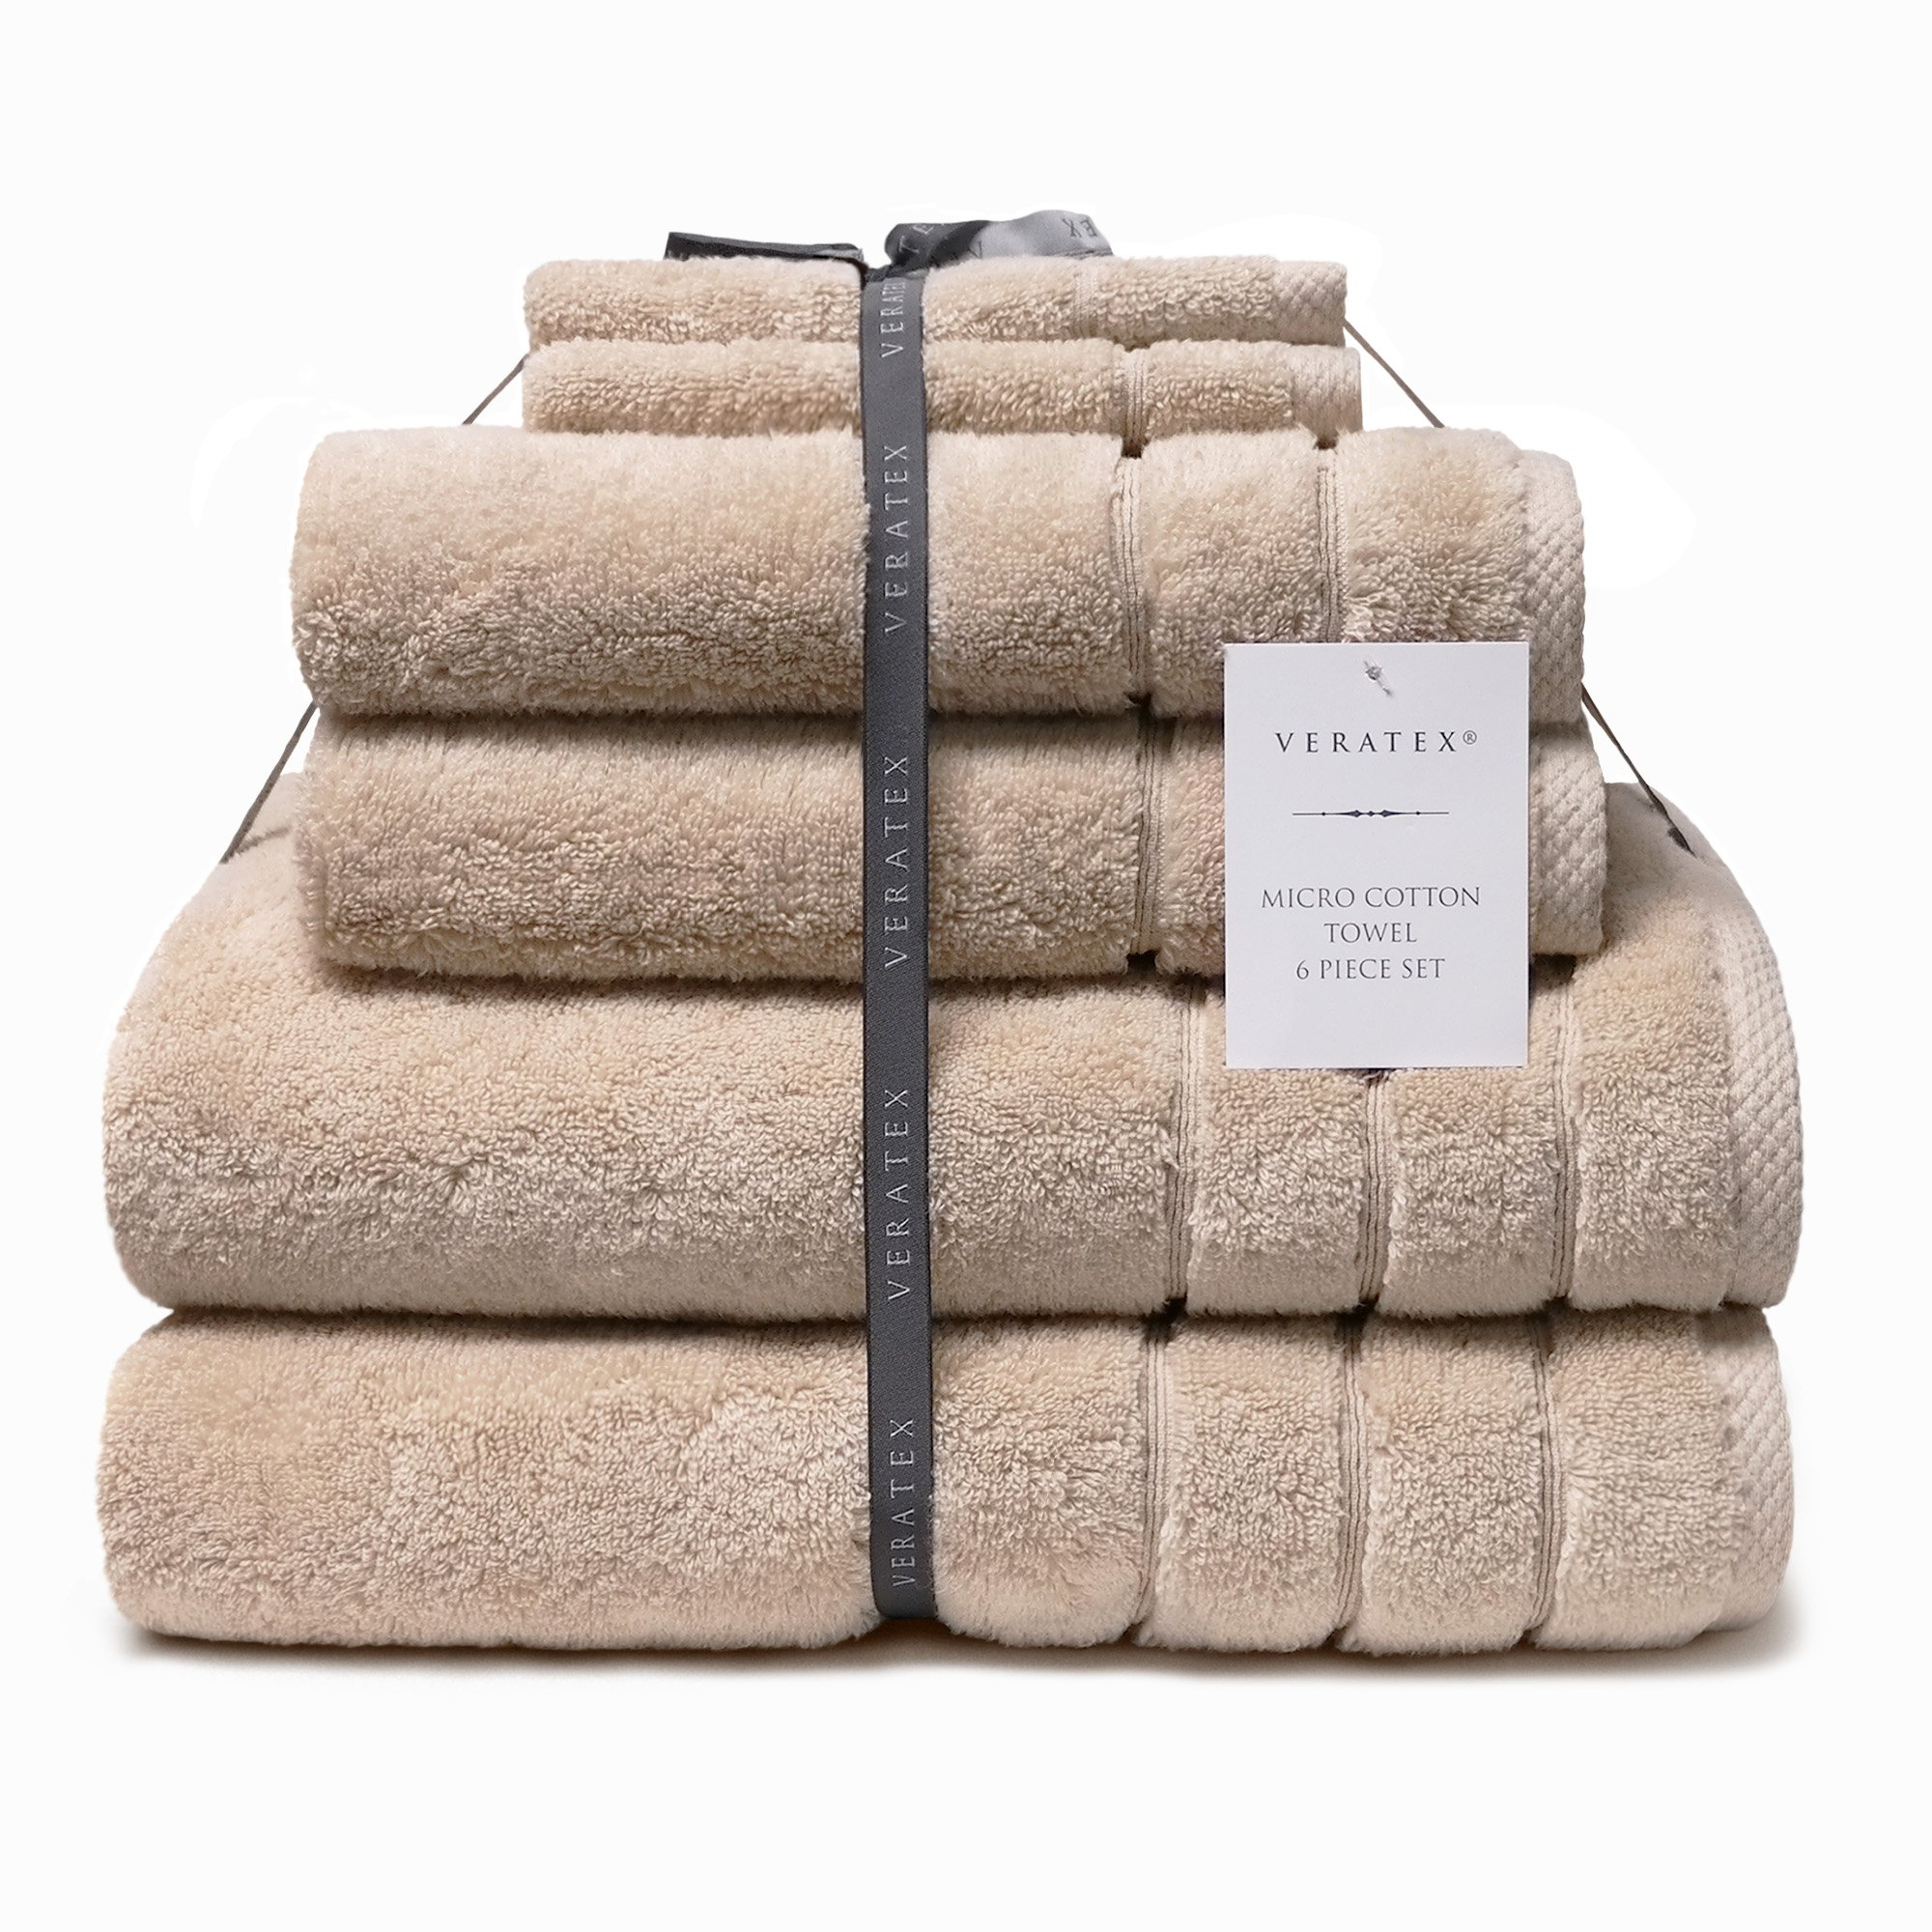 CDM product Veratex Turkish Micro Cotton Terry 6 Piece Set, Linen Bath Towel, small thumbnail image